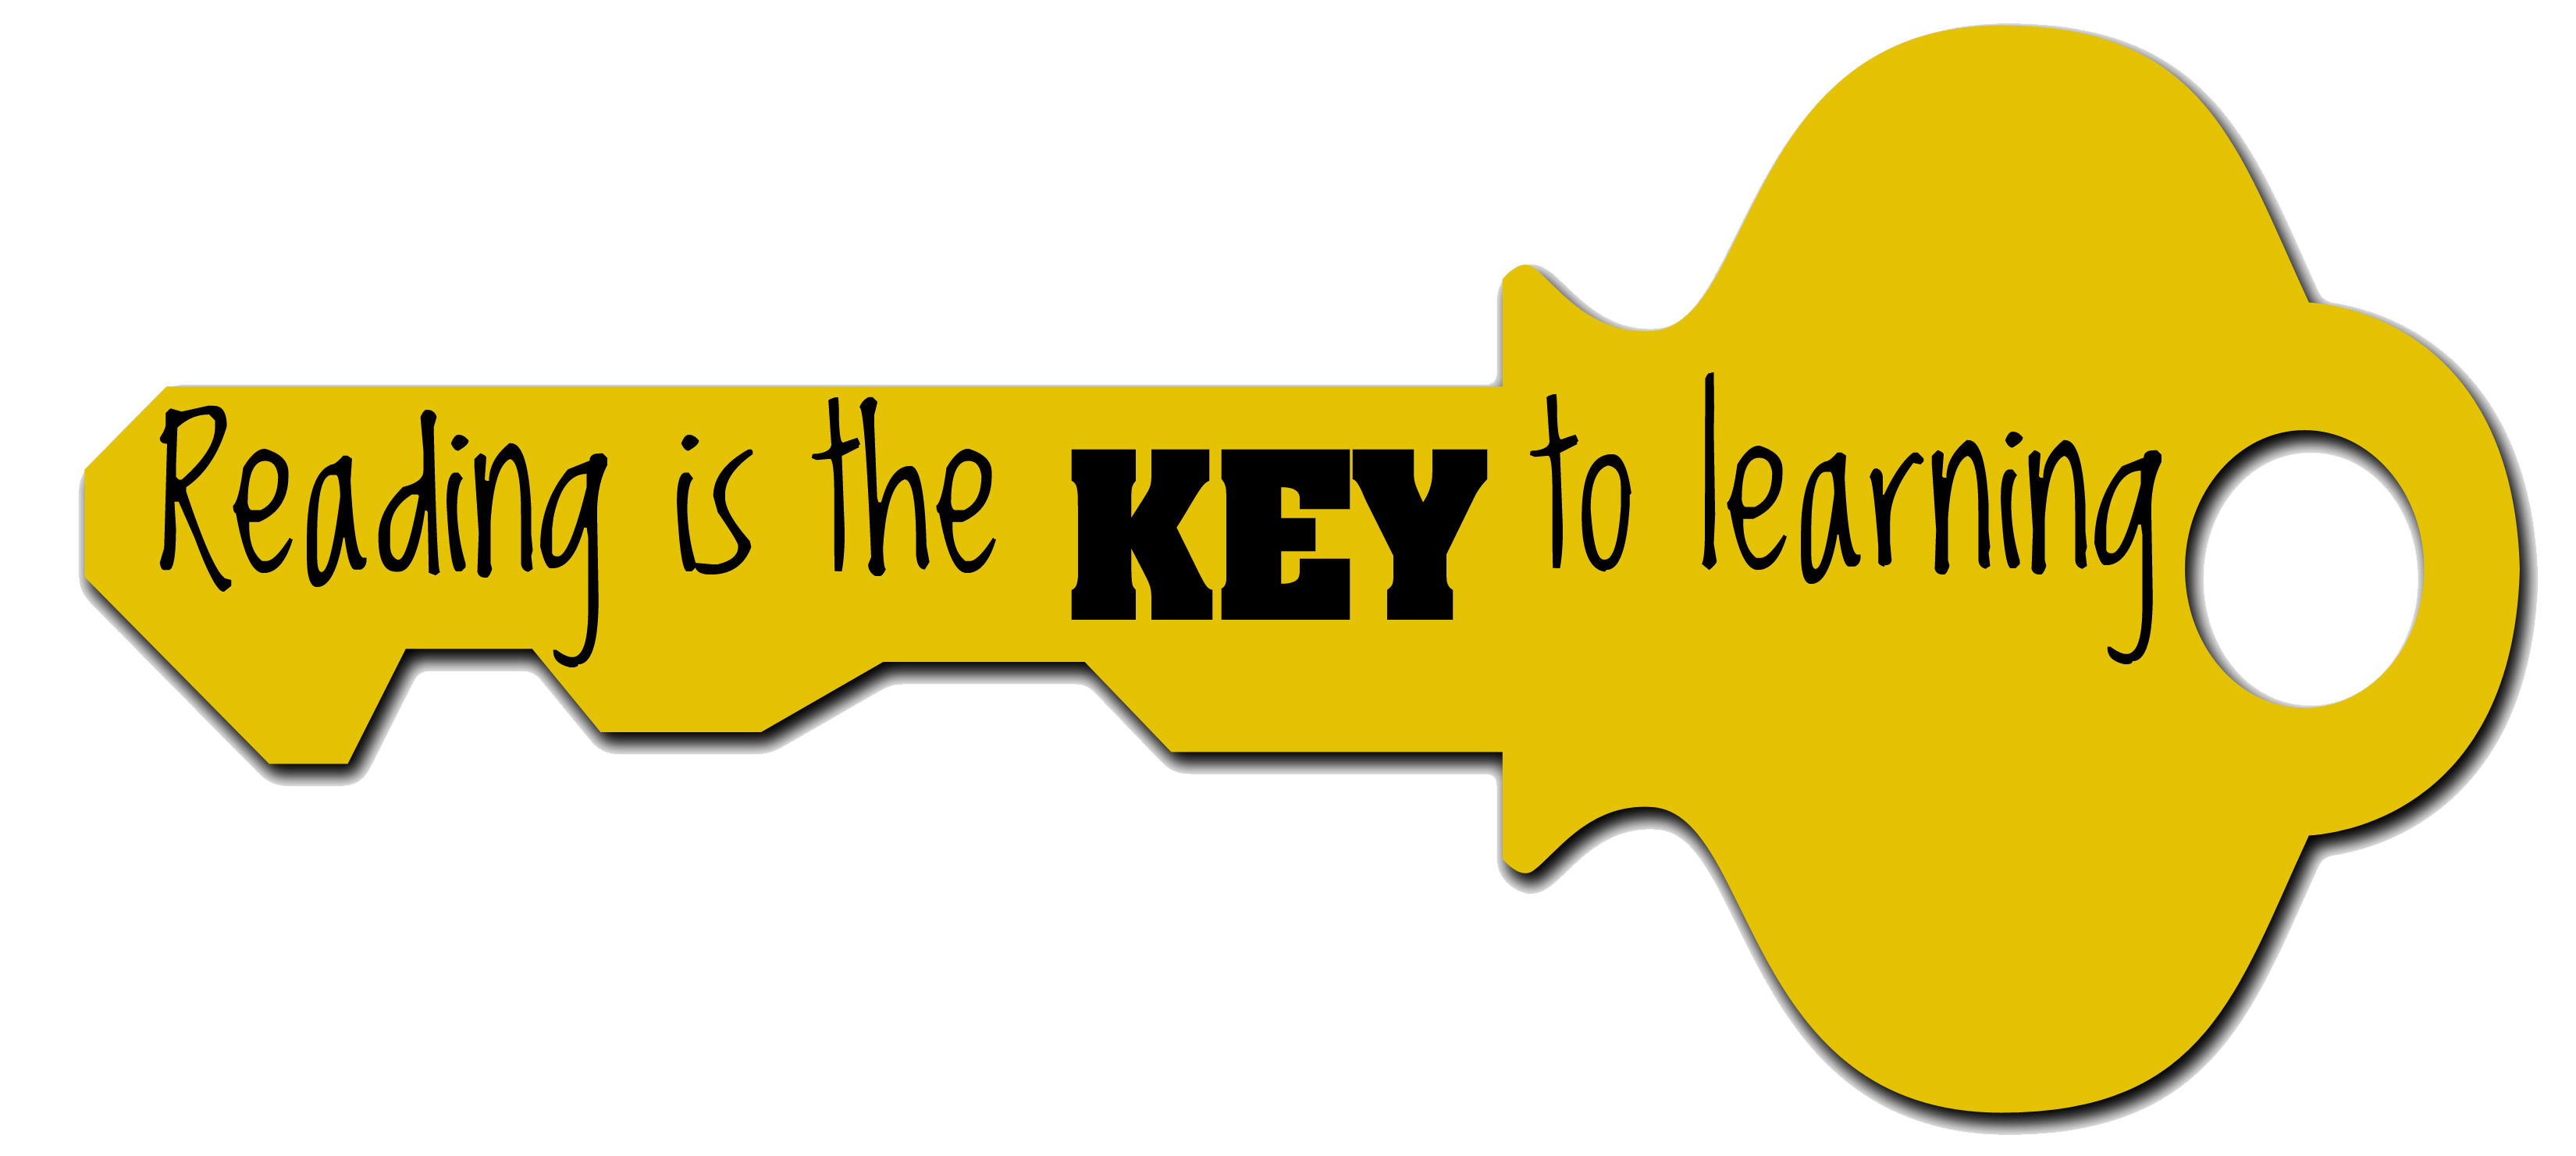 reading_is_the_key_flyer_banner.png